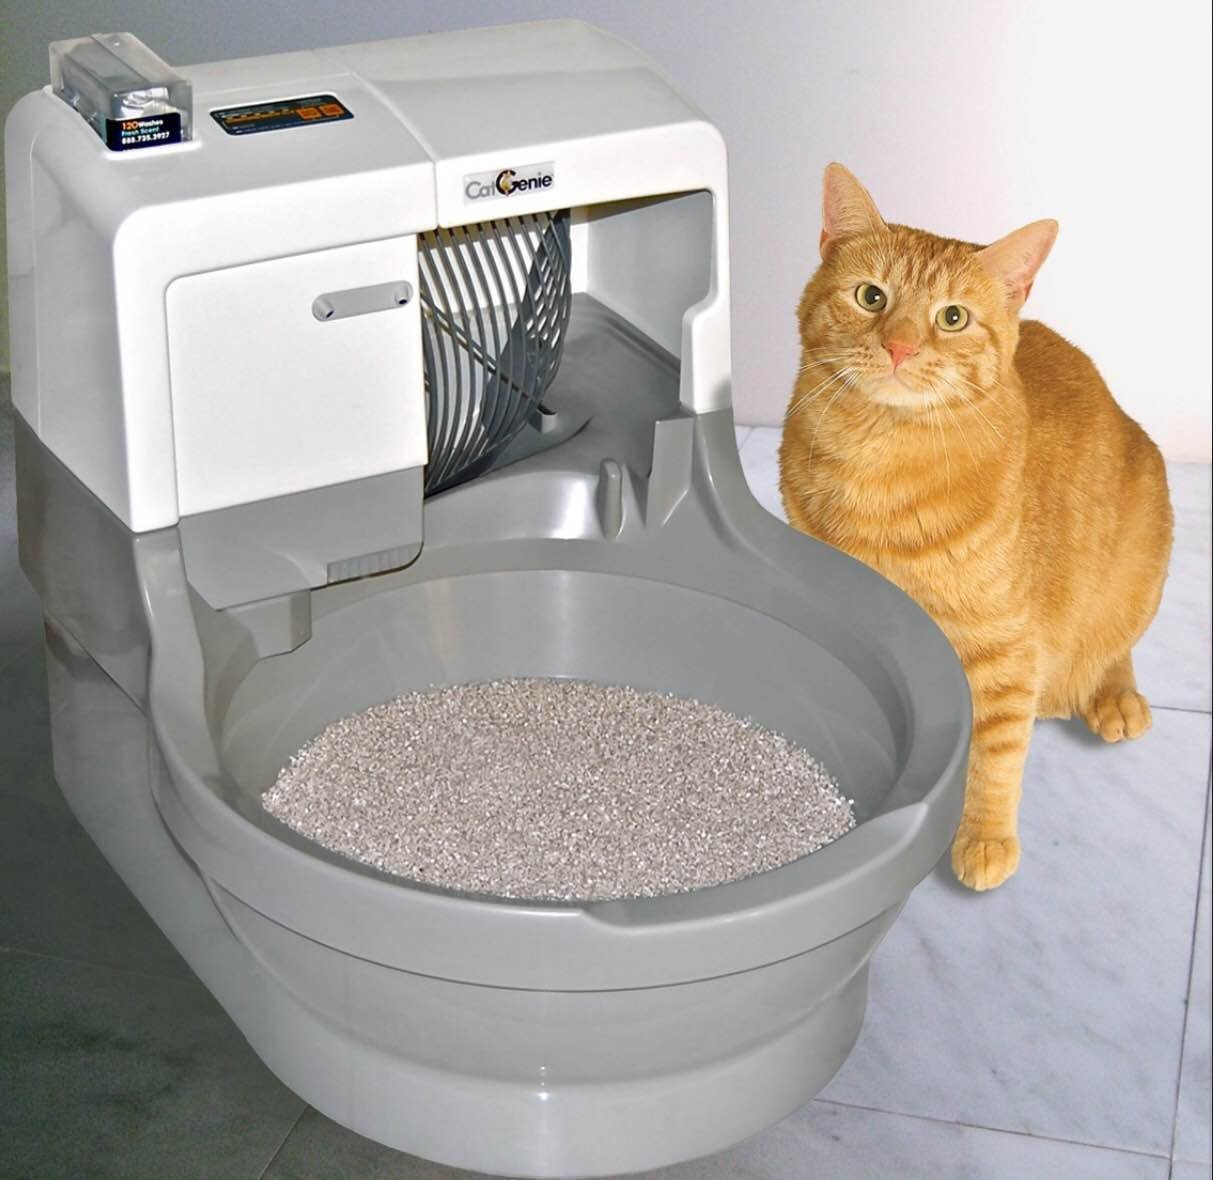 CatGenie - The World s Only Self-Flushing Self Washing Cat Box